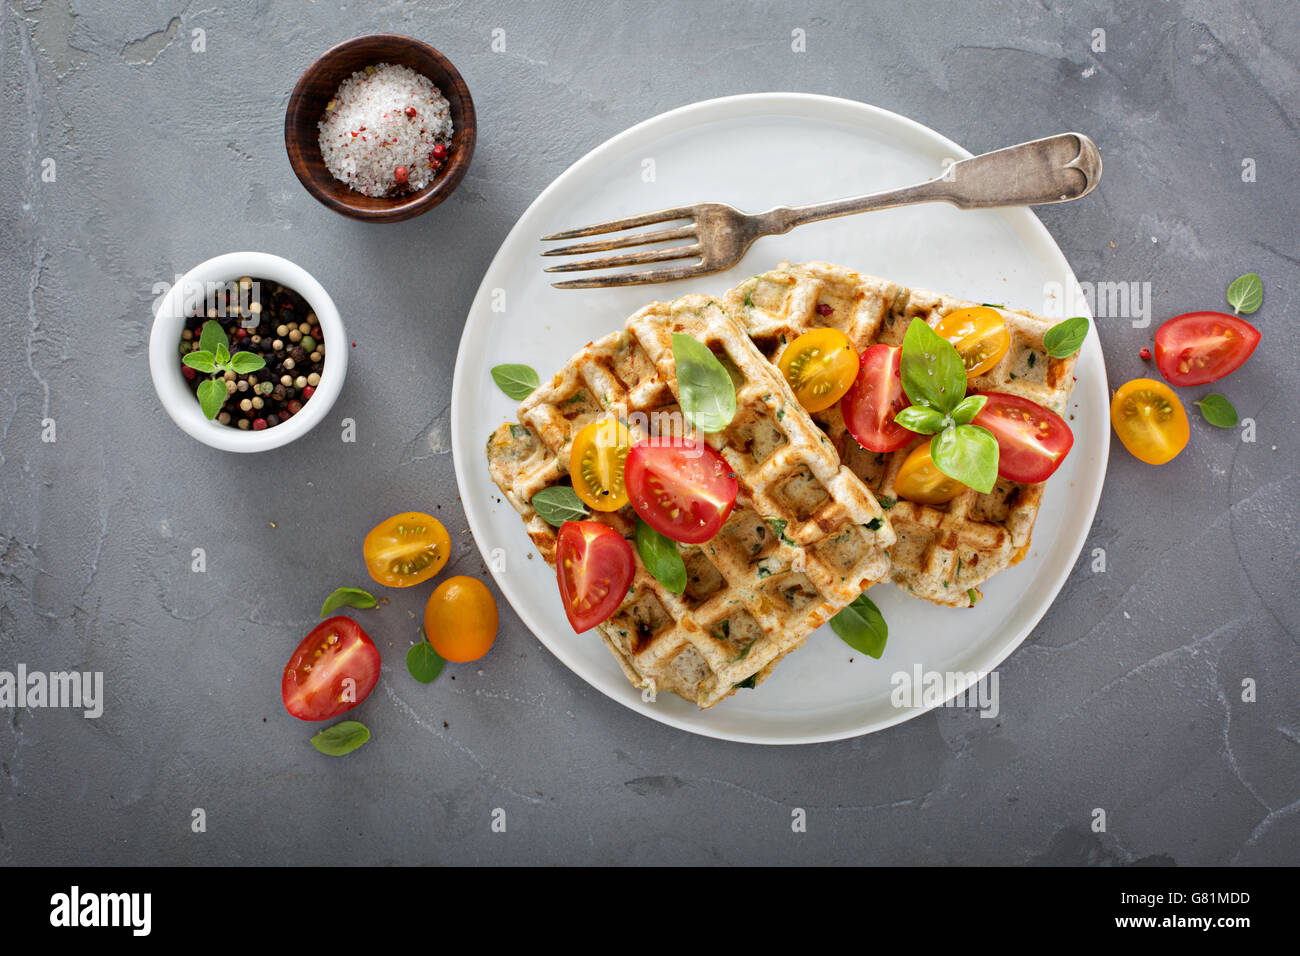 Vegetable and cheese savory waffles - Stock Image